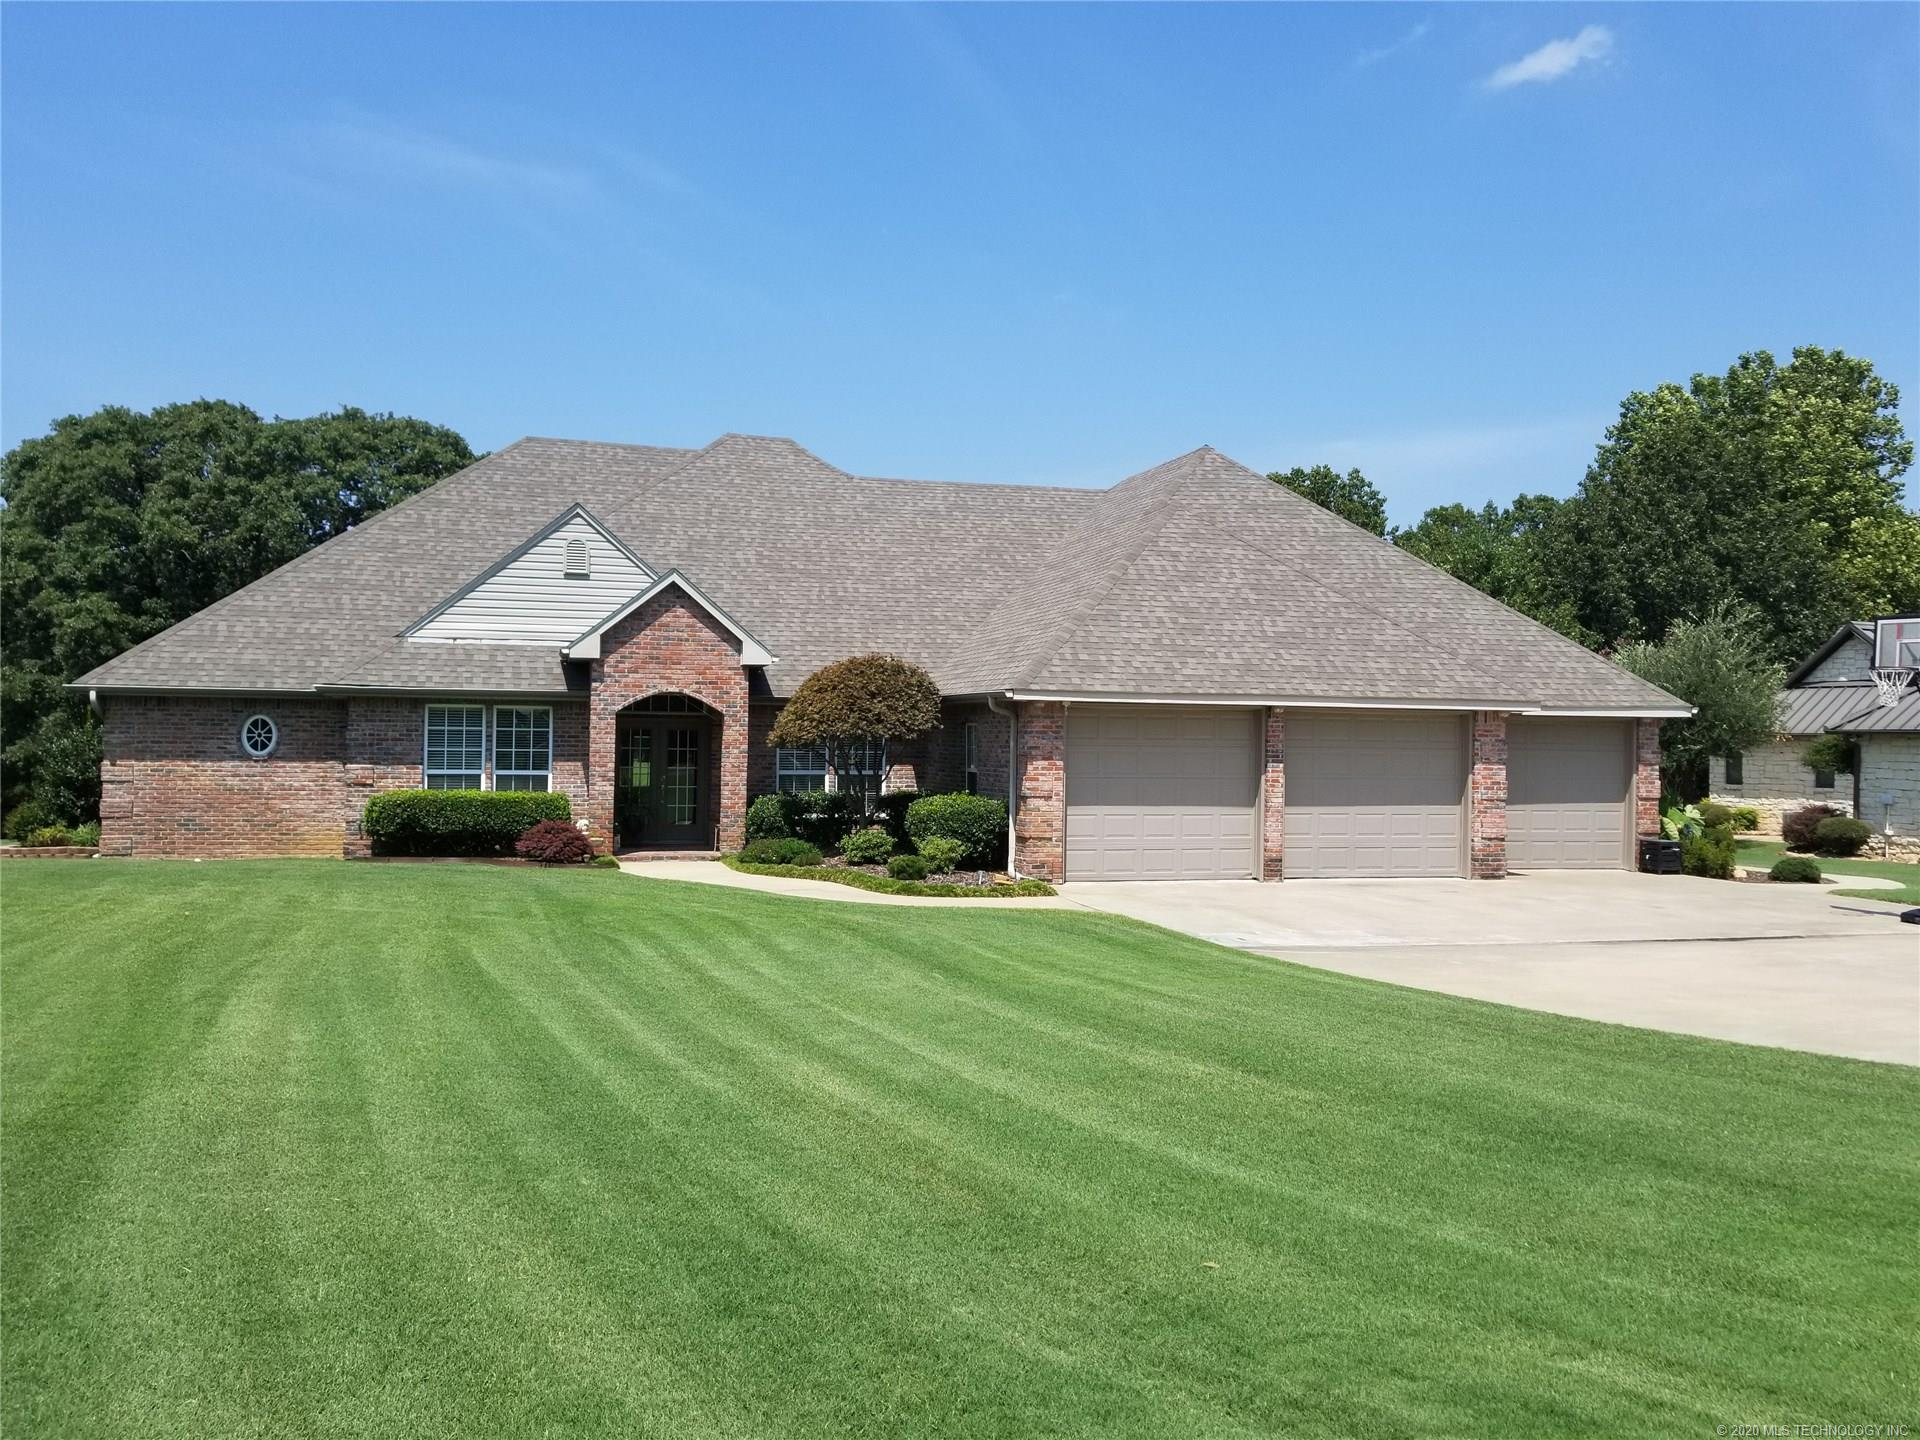 399 N Spinnaker Run , Stigler, OK 74462